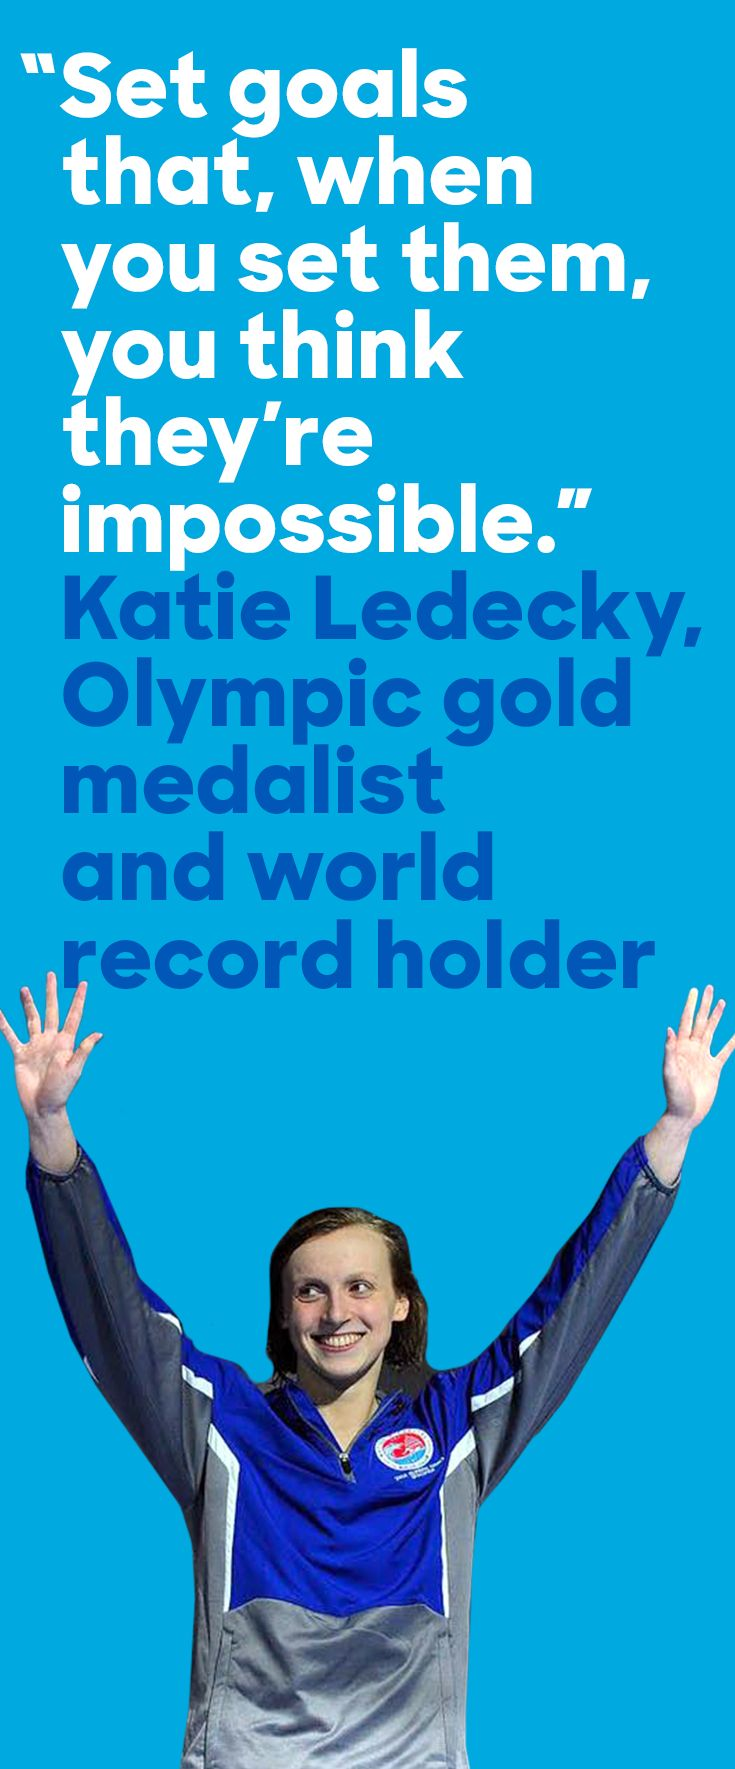 Last night in Rio, swimmer Katie Ledecky won gold—and broke her own world record in the 400 meter freestyle. Congratulations, Katie!